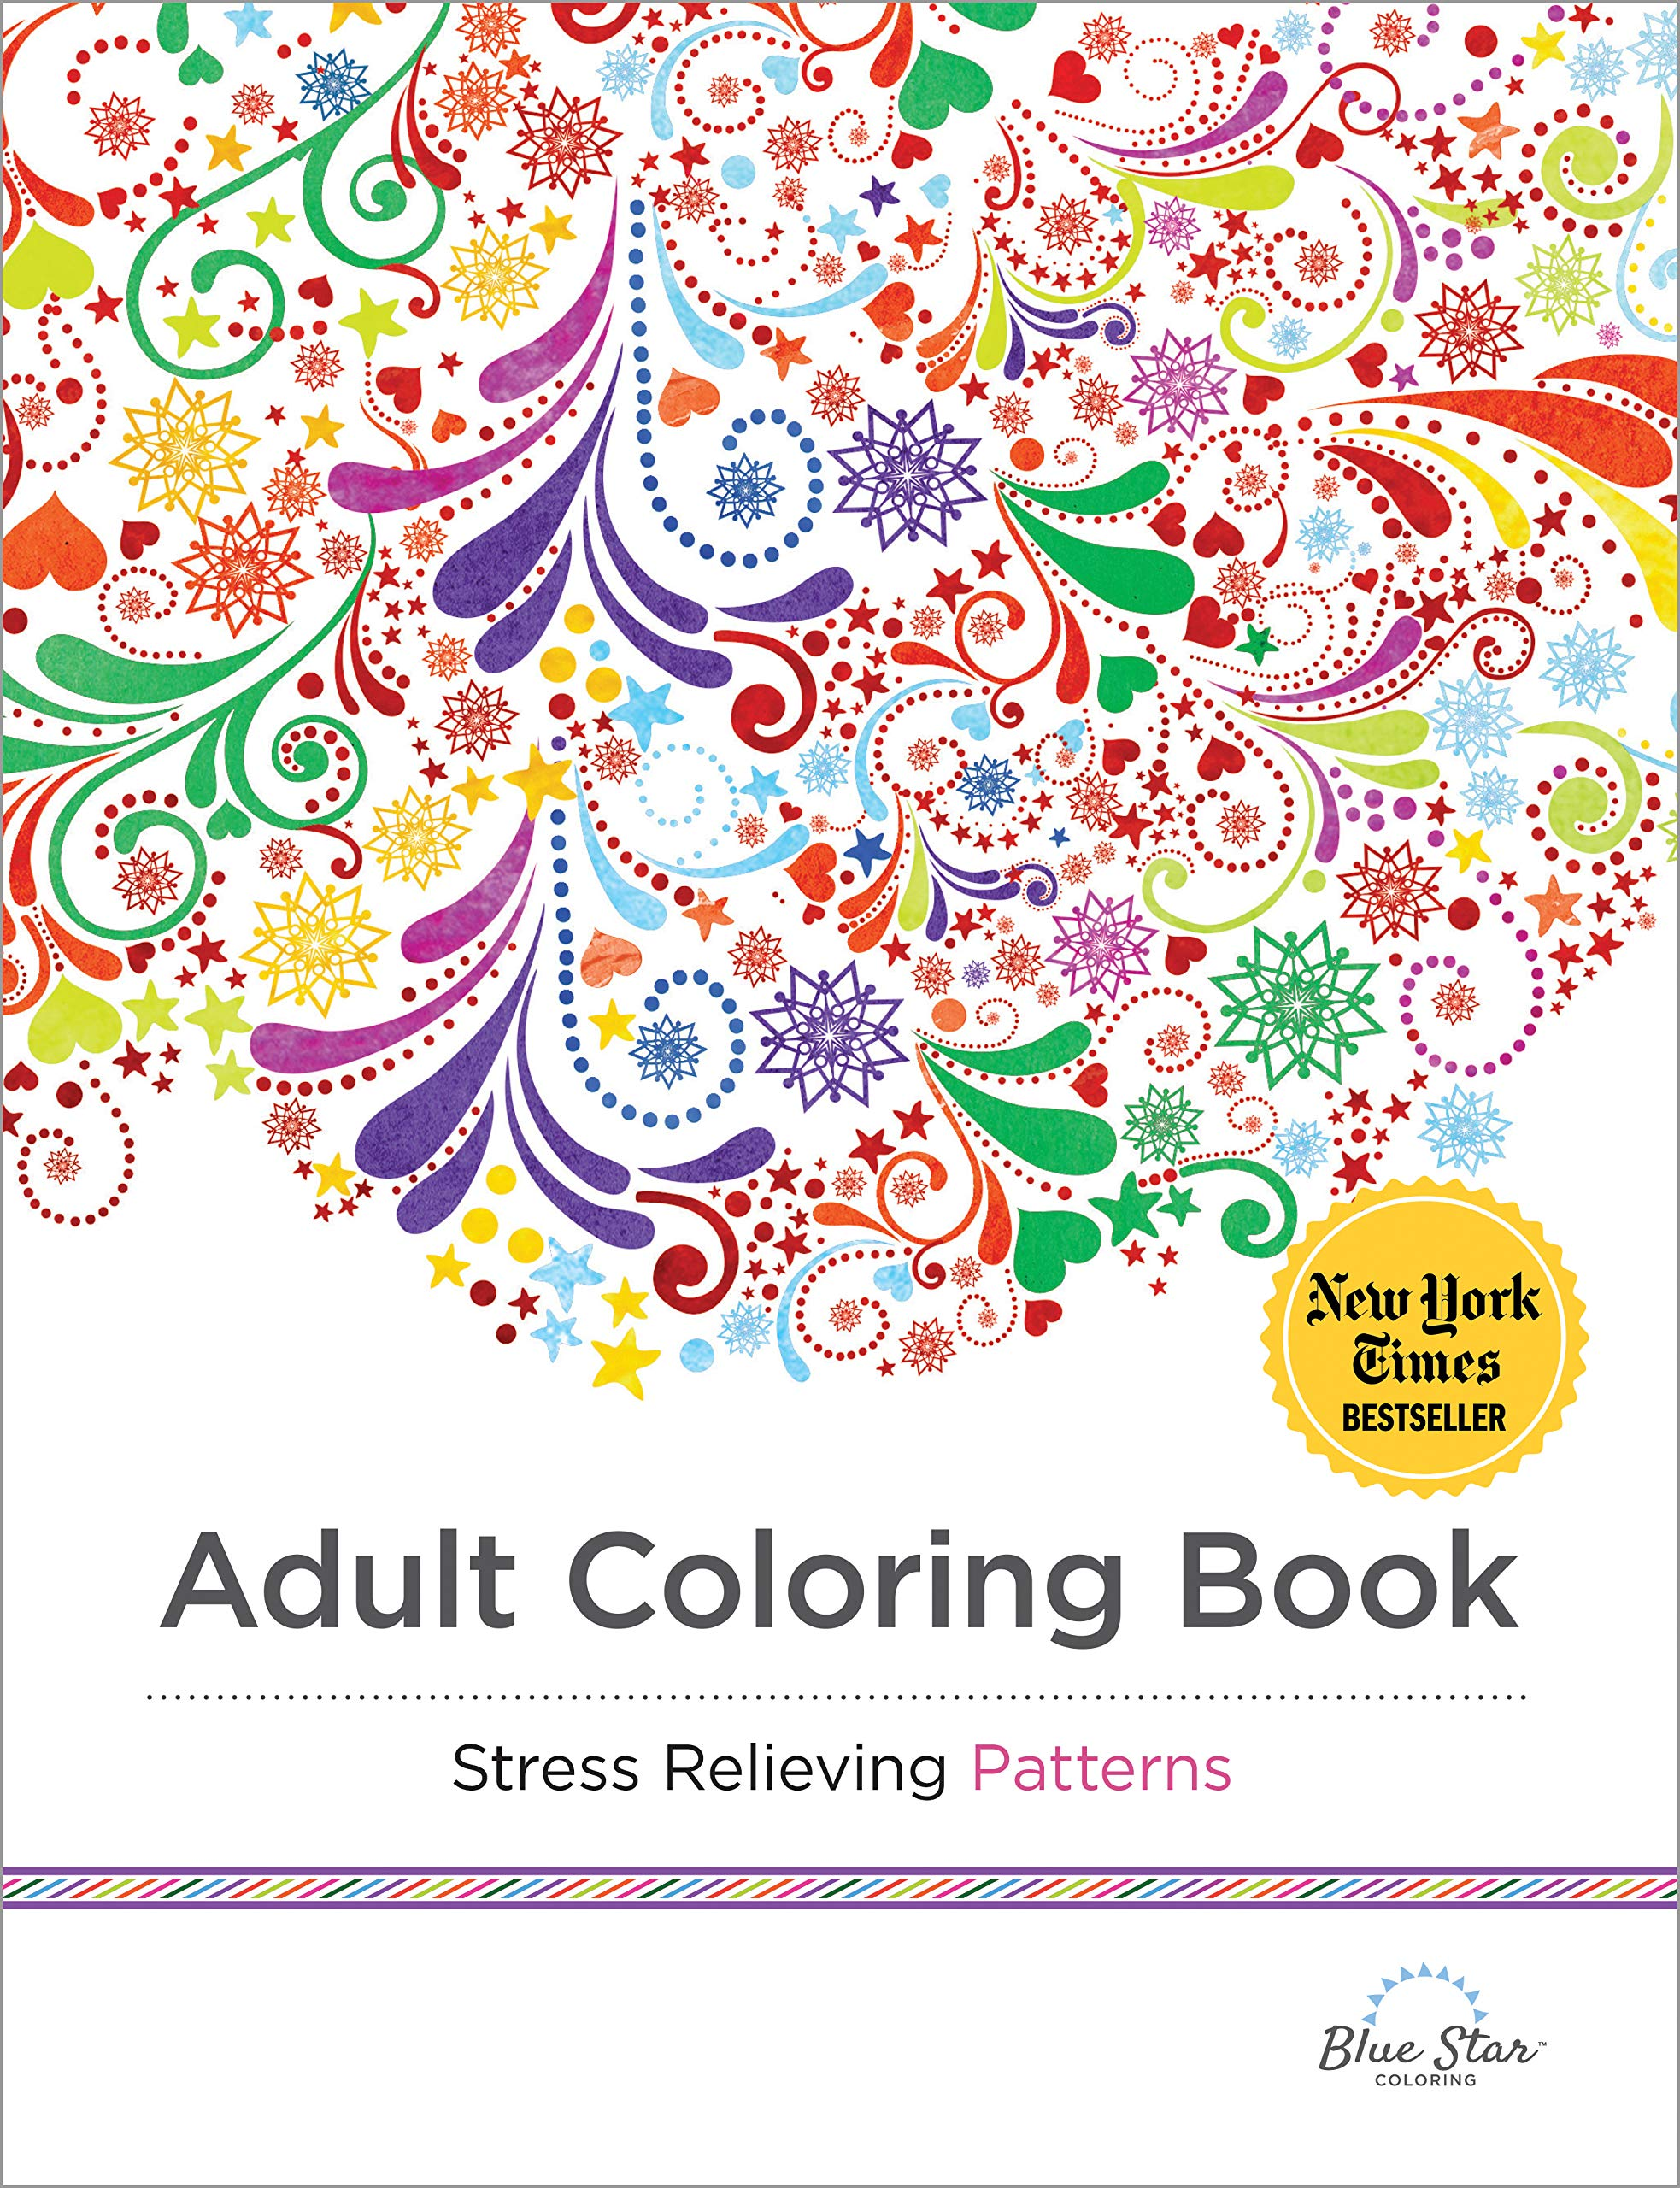 - Adult Coloring Book: Stress Relieving Patterns: Blue Star Coloring